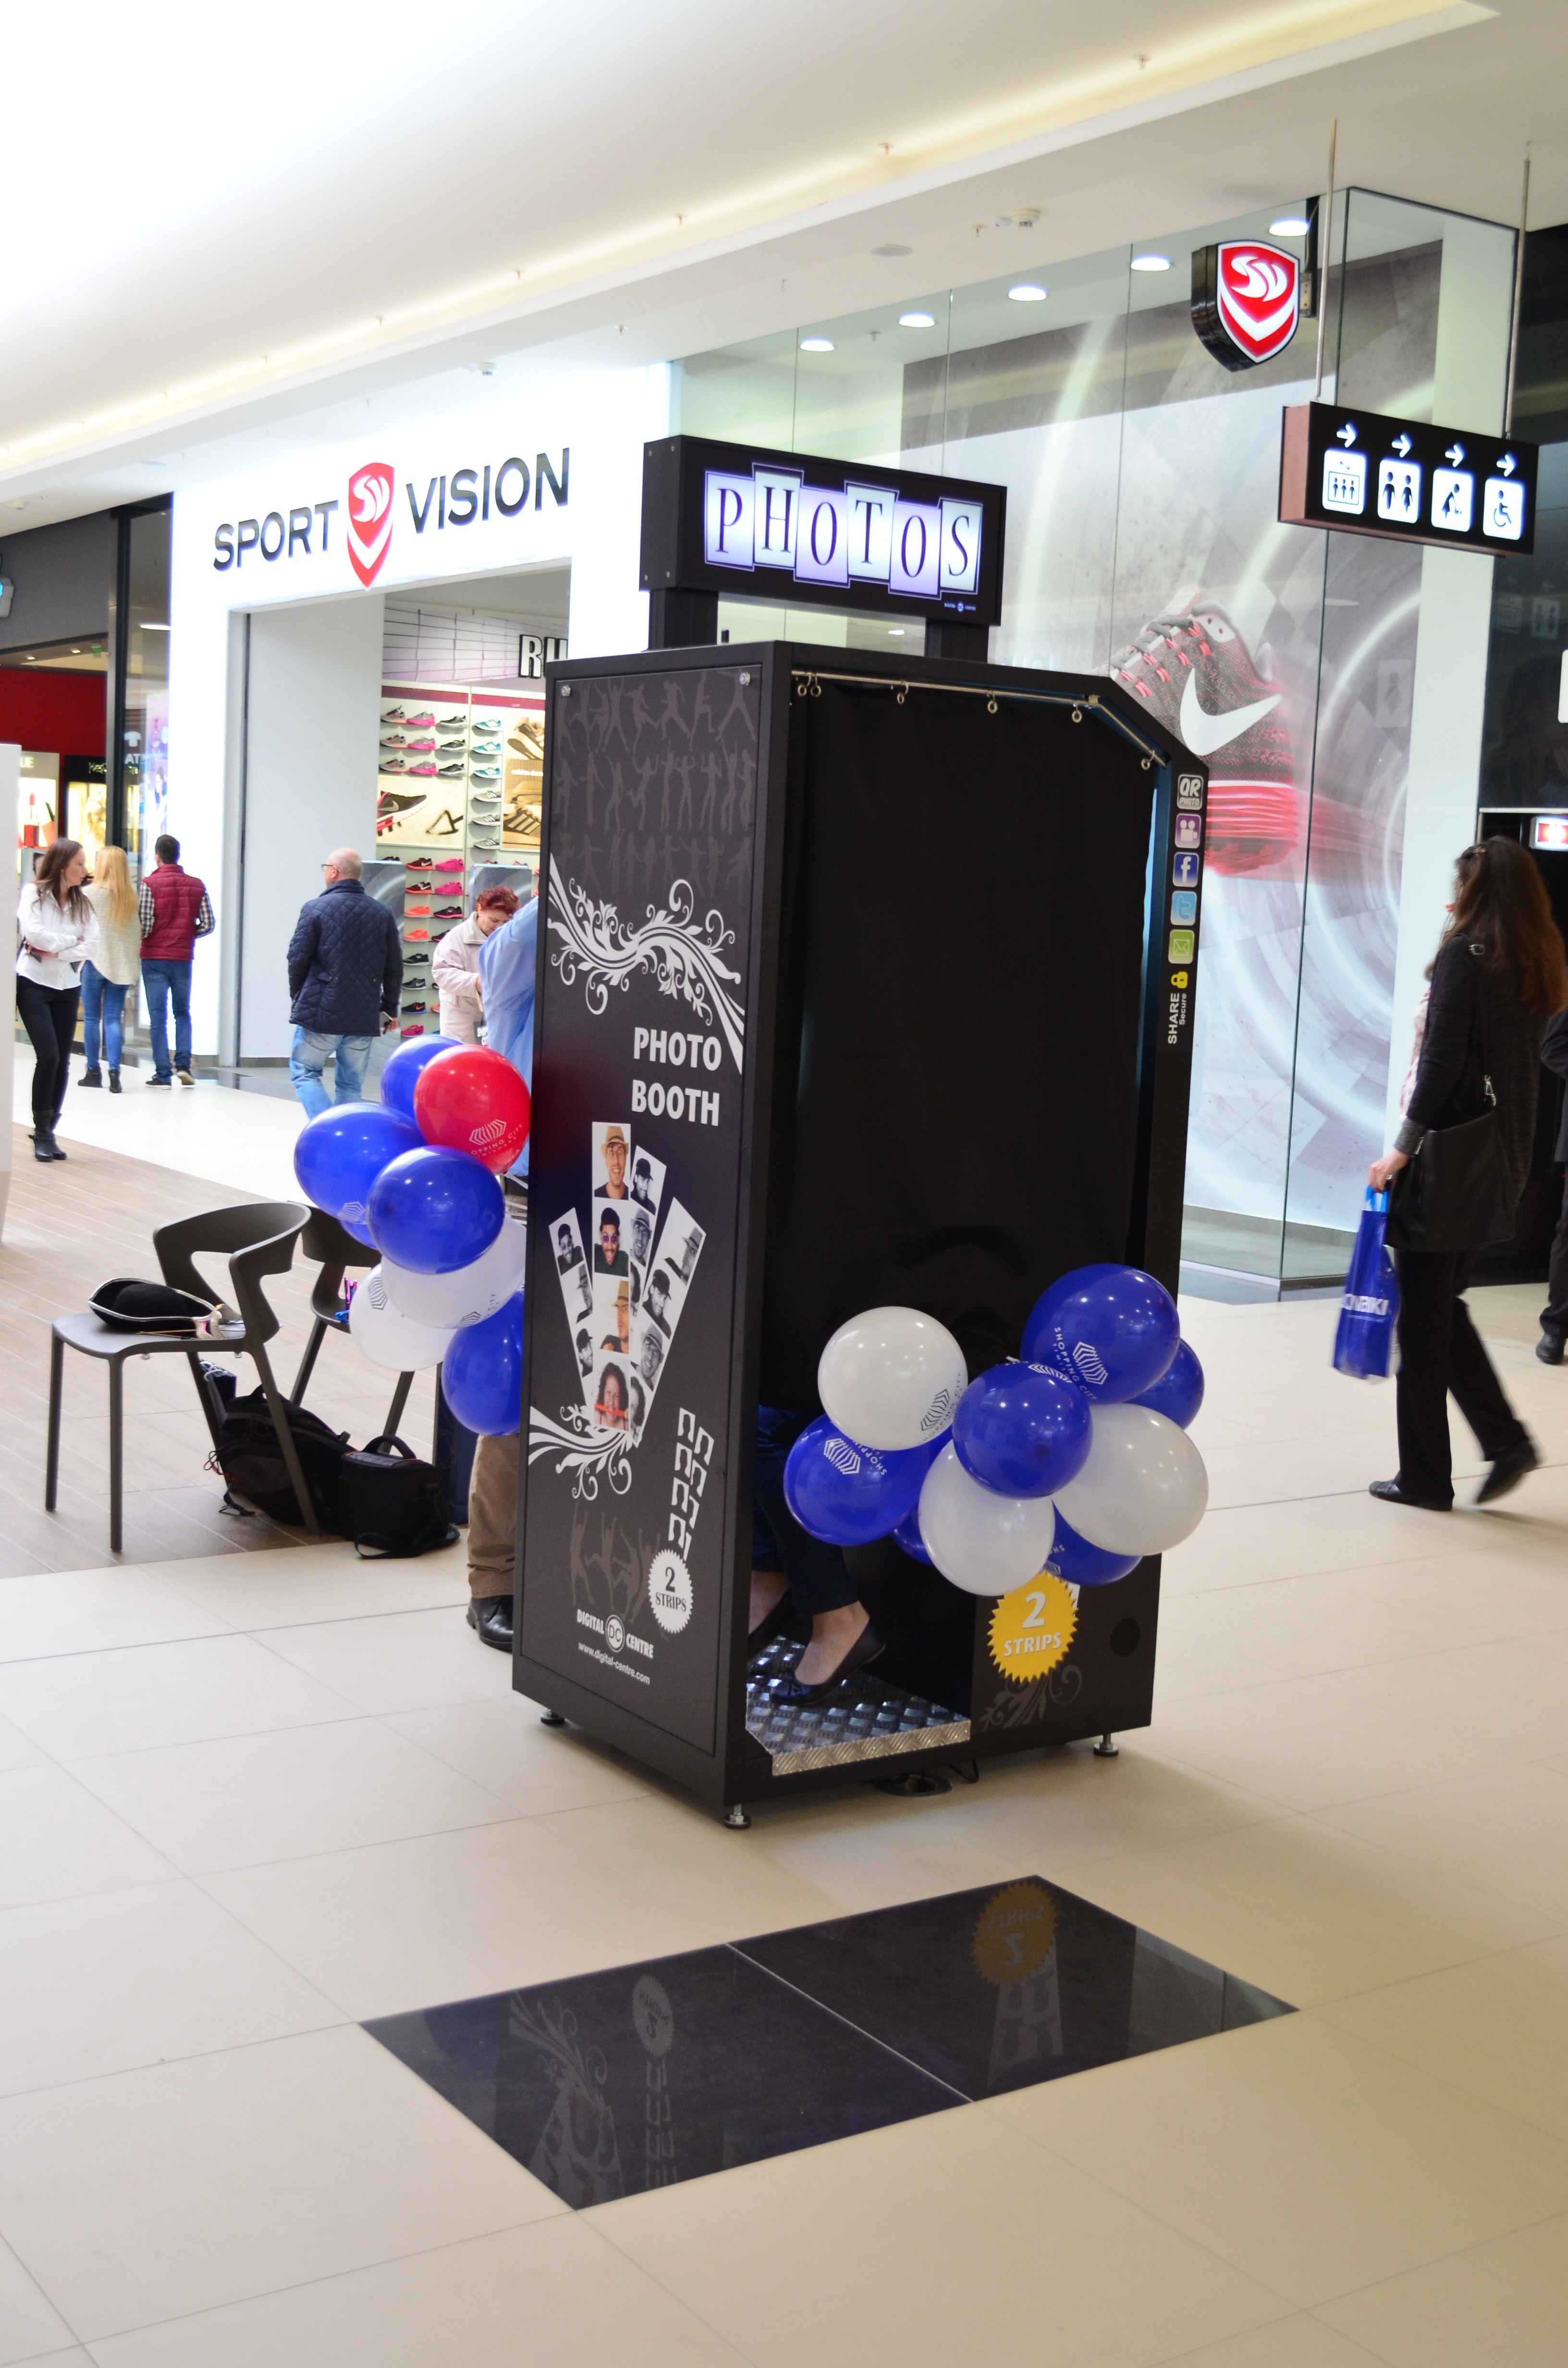 Cabina foto BW Photo Booth din Shopping City Timisoara